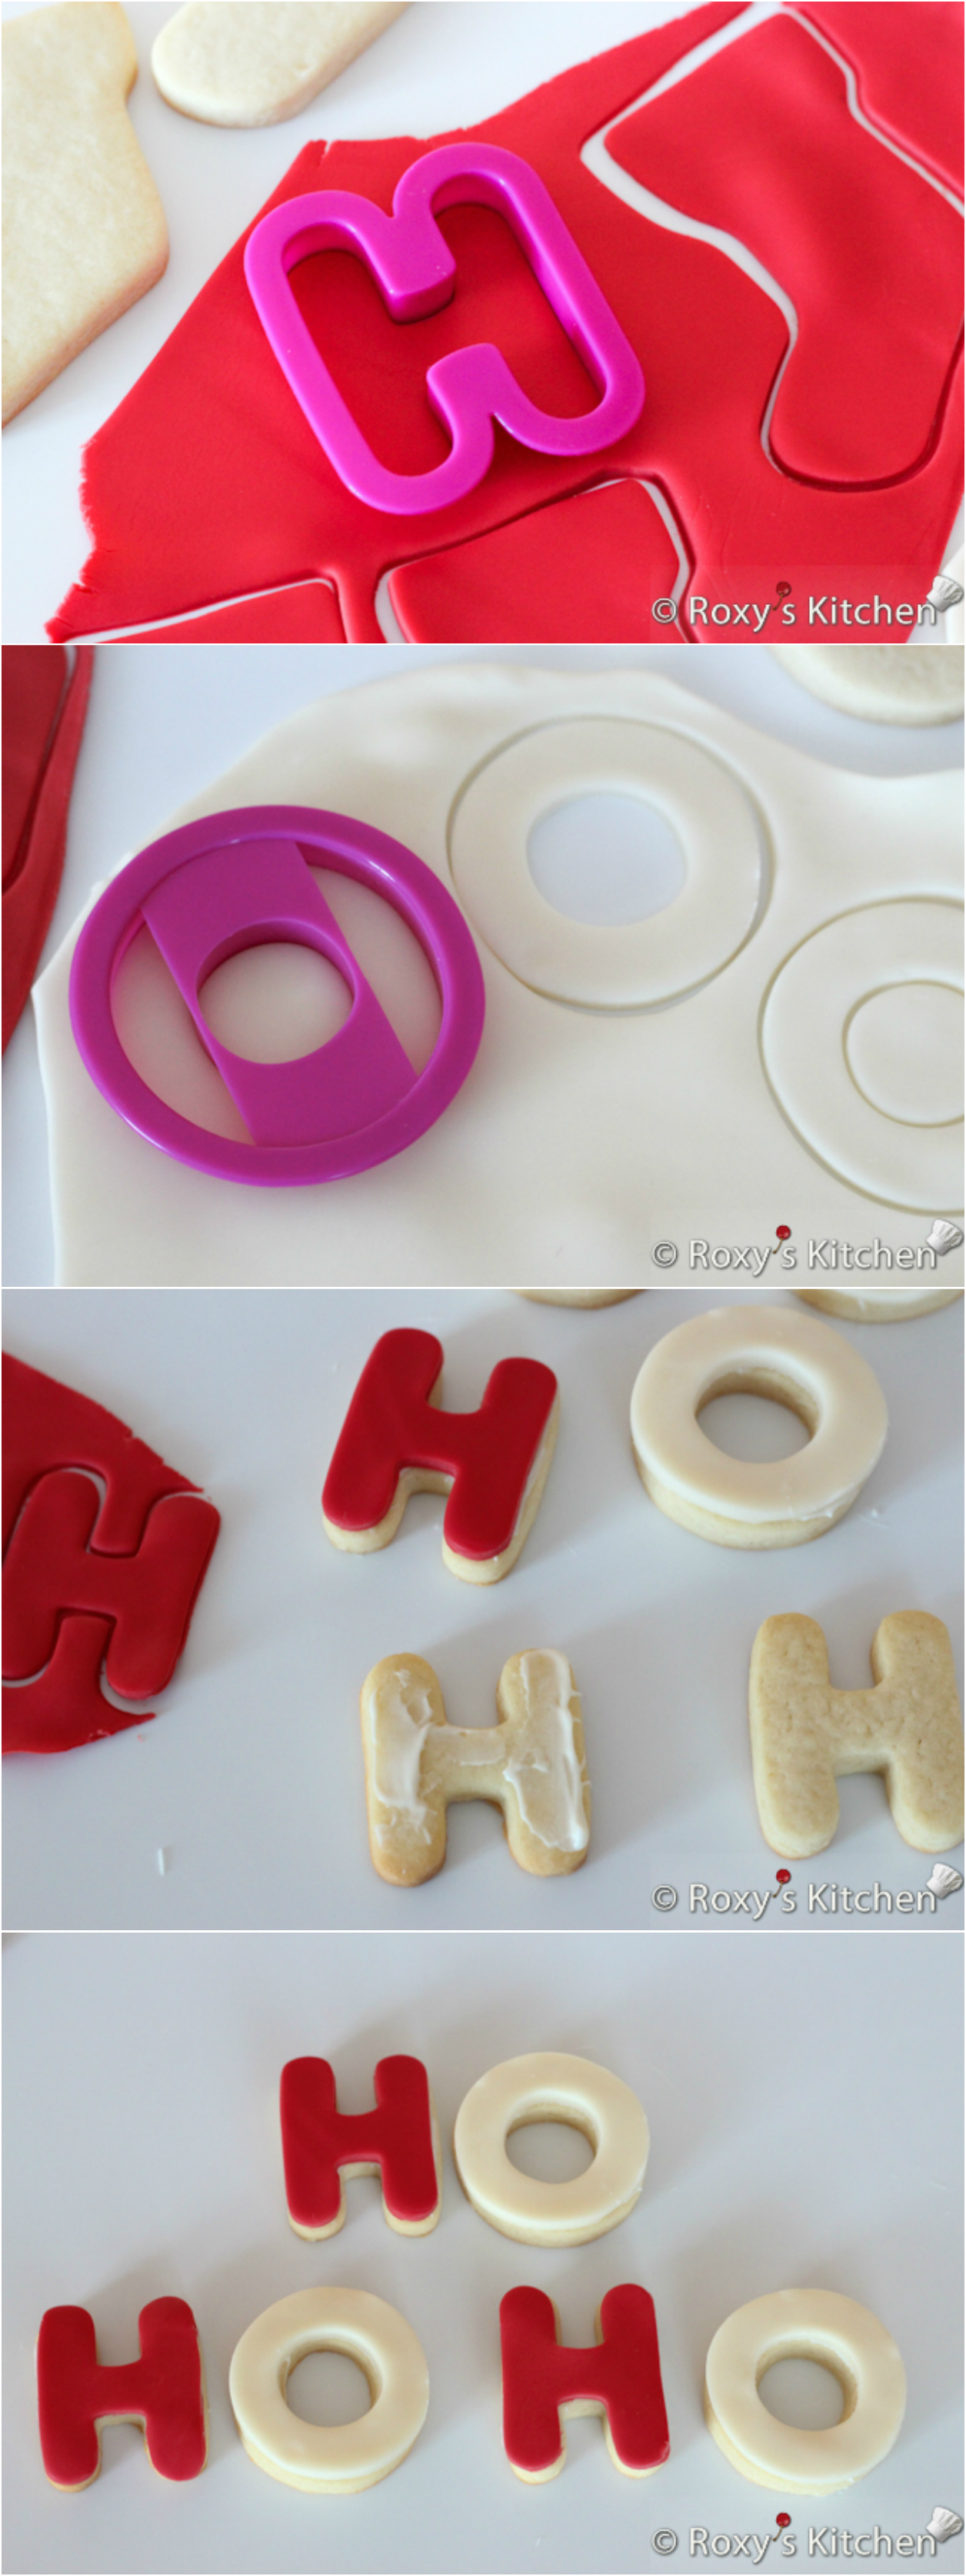 HO HO HO Christmas Cookies --- Christmas Sugar Cookies Covered with Modeling Chocolate - HO HO HO, snowmen, reindeer, Christmas trees, stockings & presents | Roxy's Kitchen